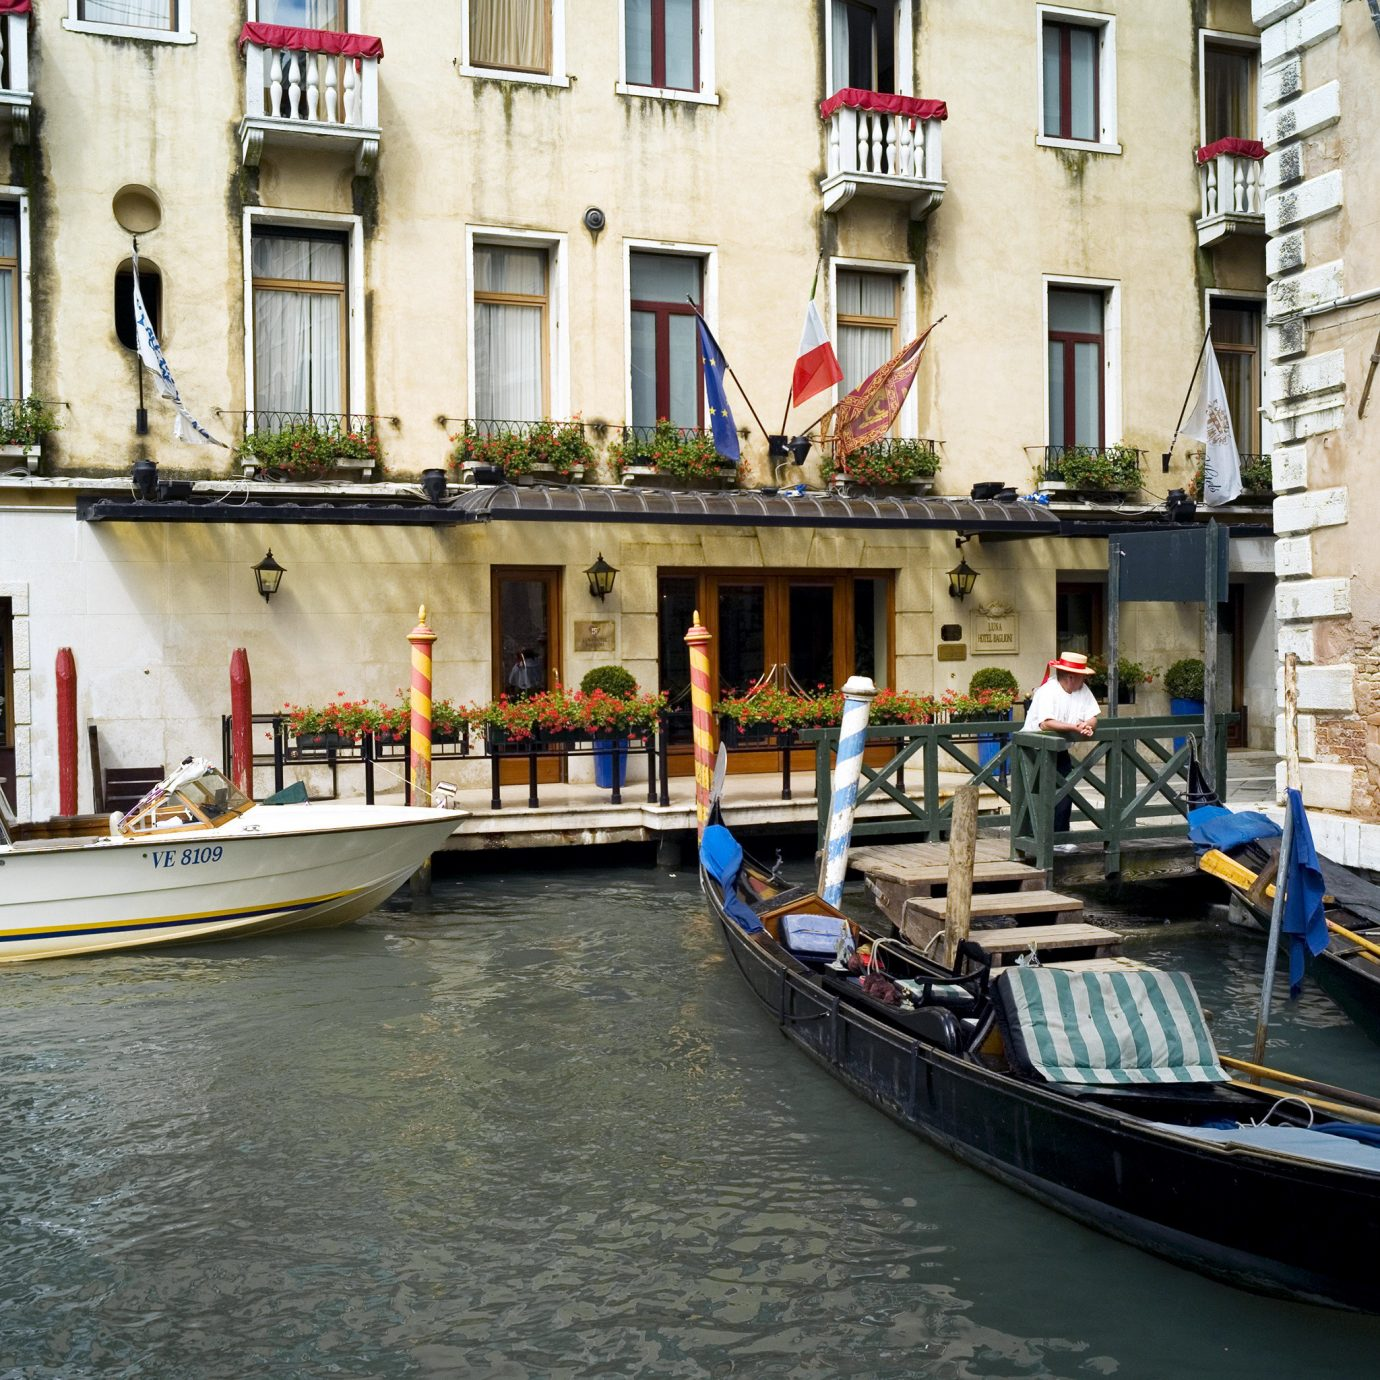 City Classic Elegant Exterior Historic Hotels Italy Luxury Travel Romance Romantic Venice Waterfront building Boat water vehicle Canal Town waterway gondola watercraft travel